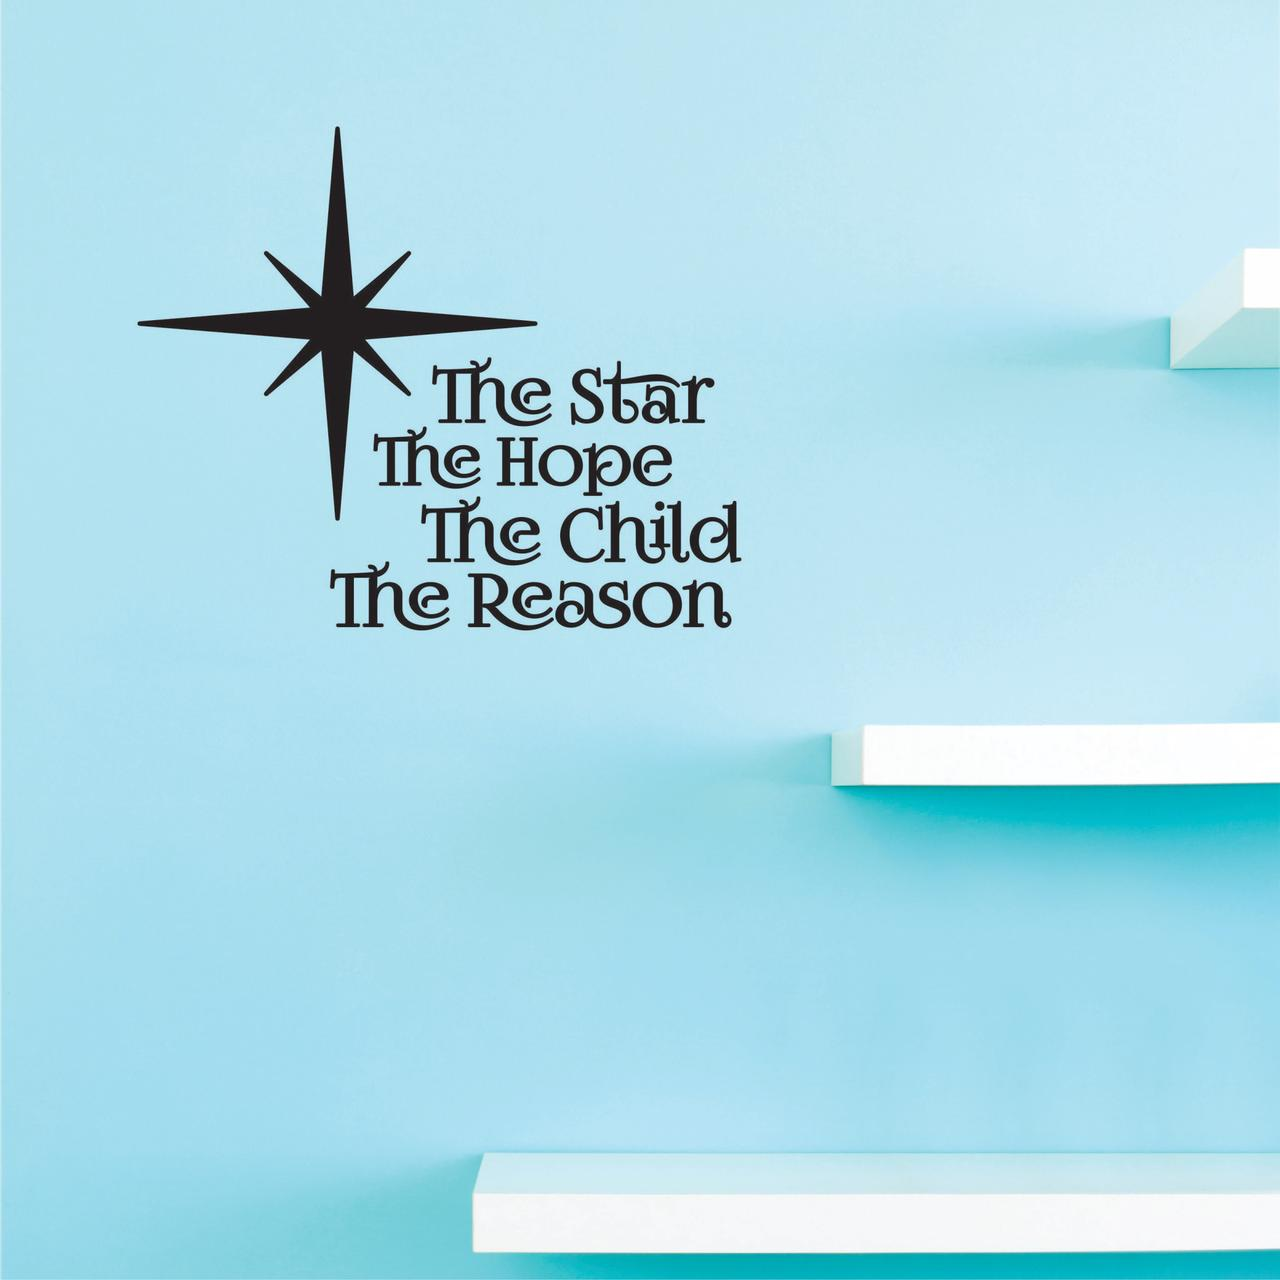 Custom Decals The star the hope the child the reason Wall Art Size: 20 Inches x 20 Inches Color: Black